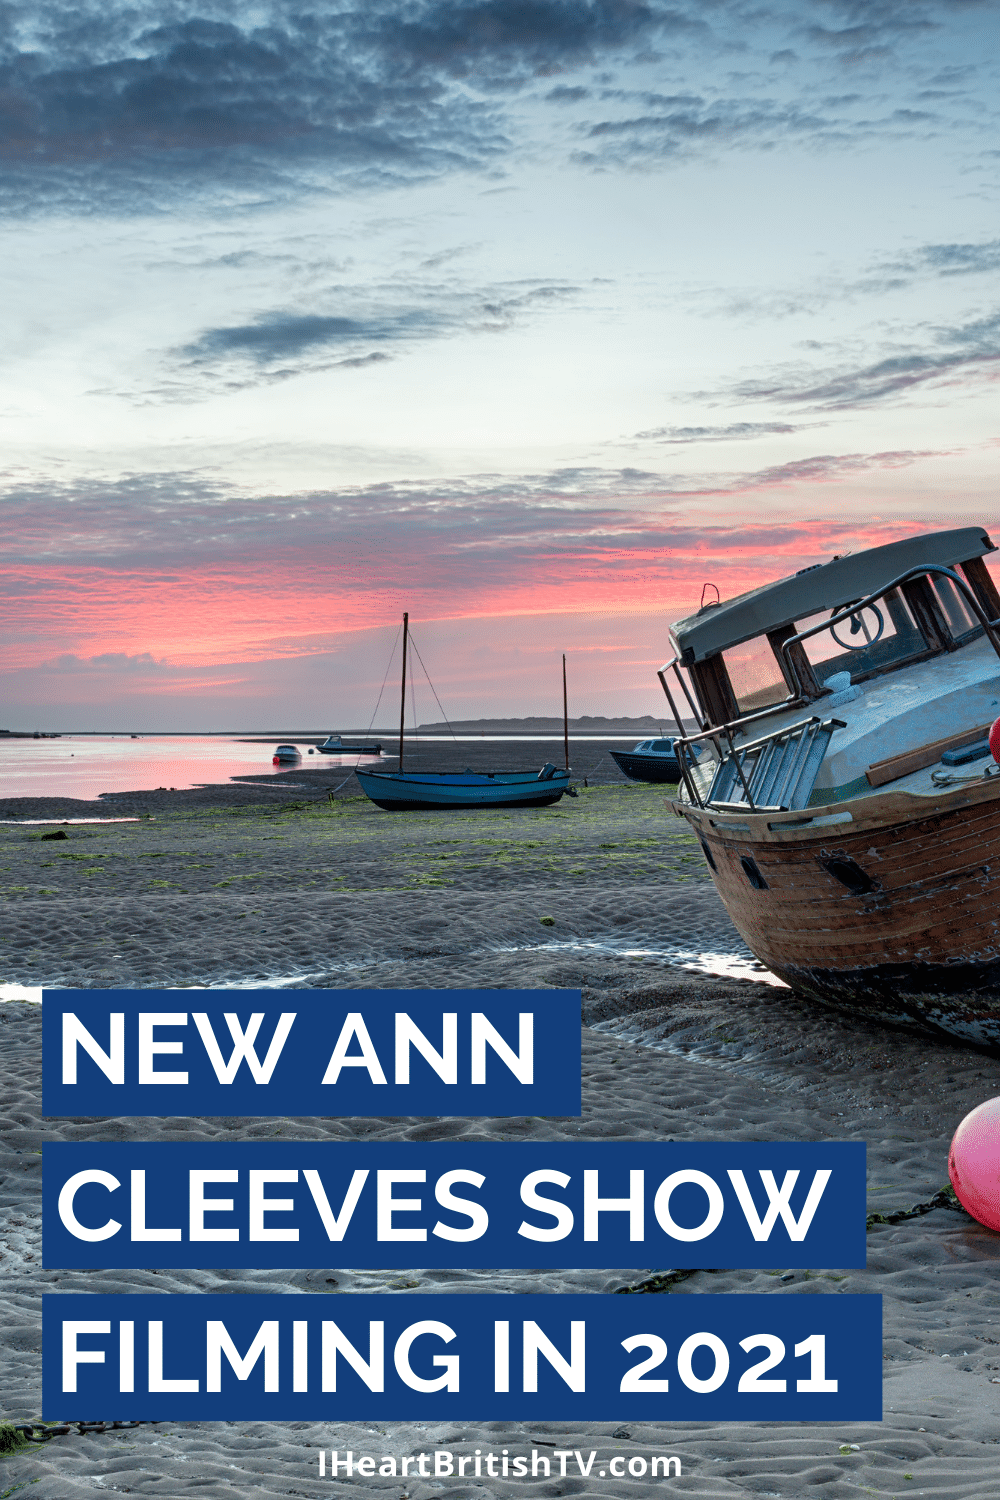 New Ann Cleeves Detective Mystery, The Long Call, to Begin Filming in Spring 2021 2